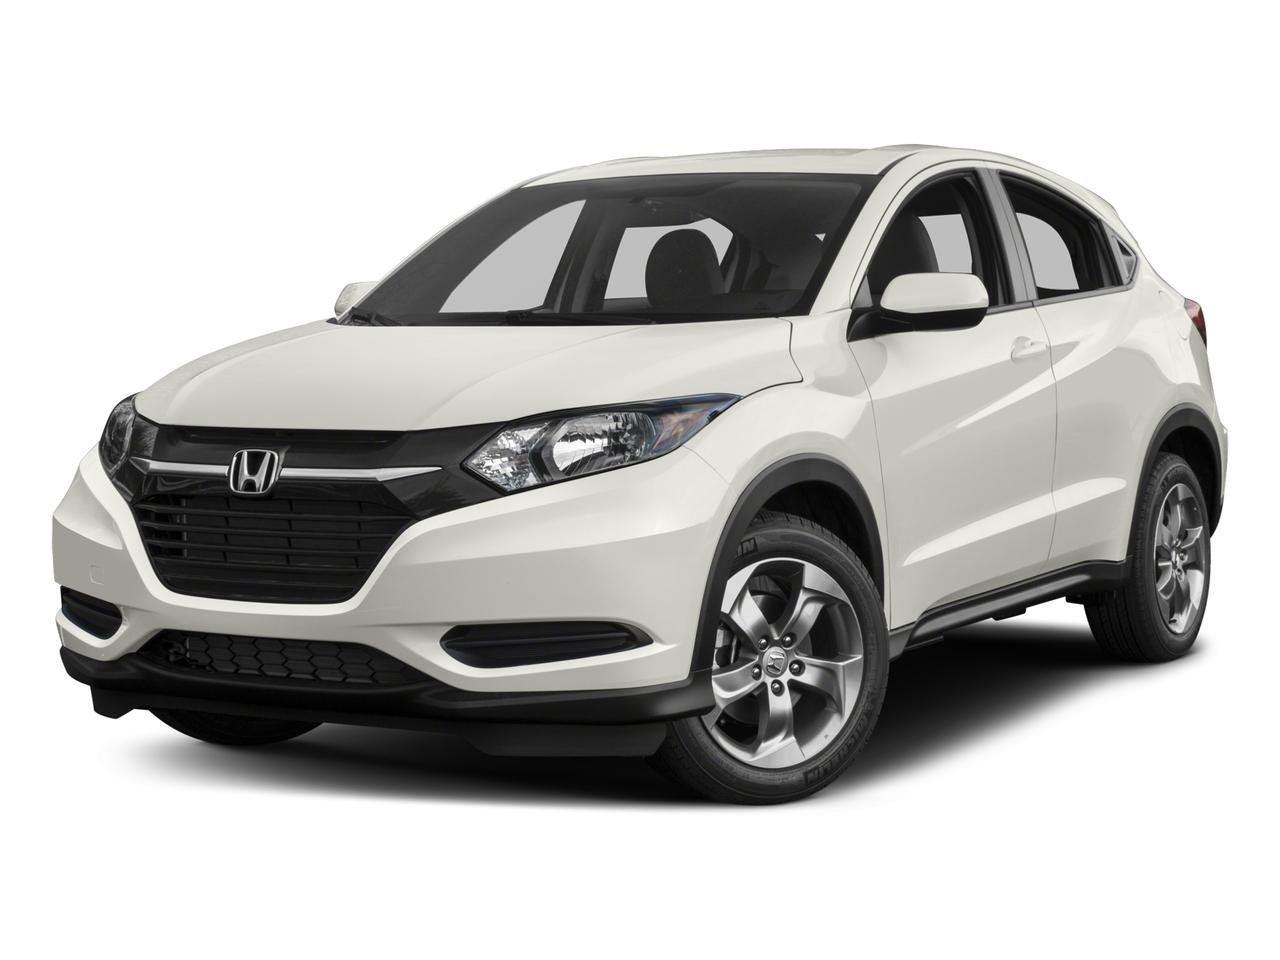 2017 Honda HR-V Vehicle Photo in Bowie, MD 20716